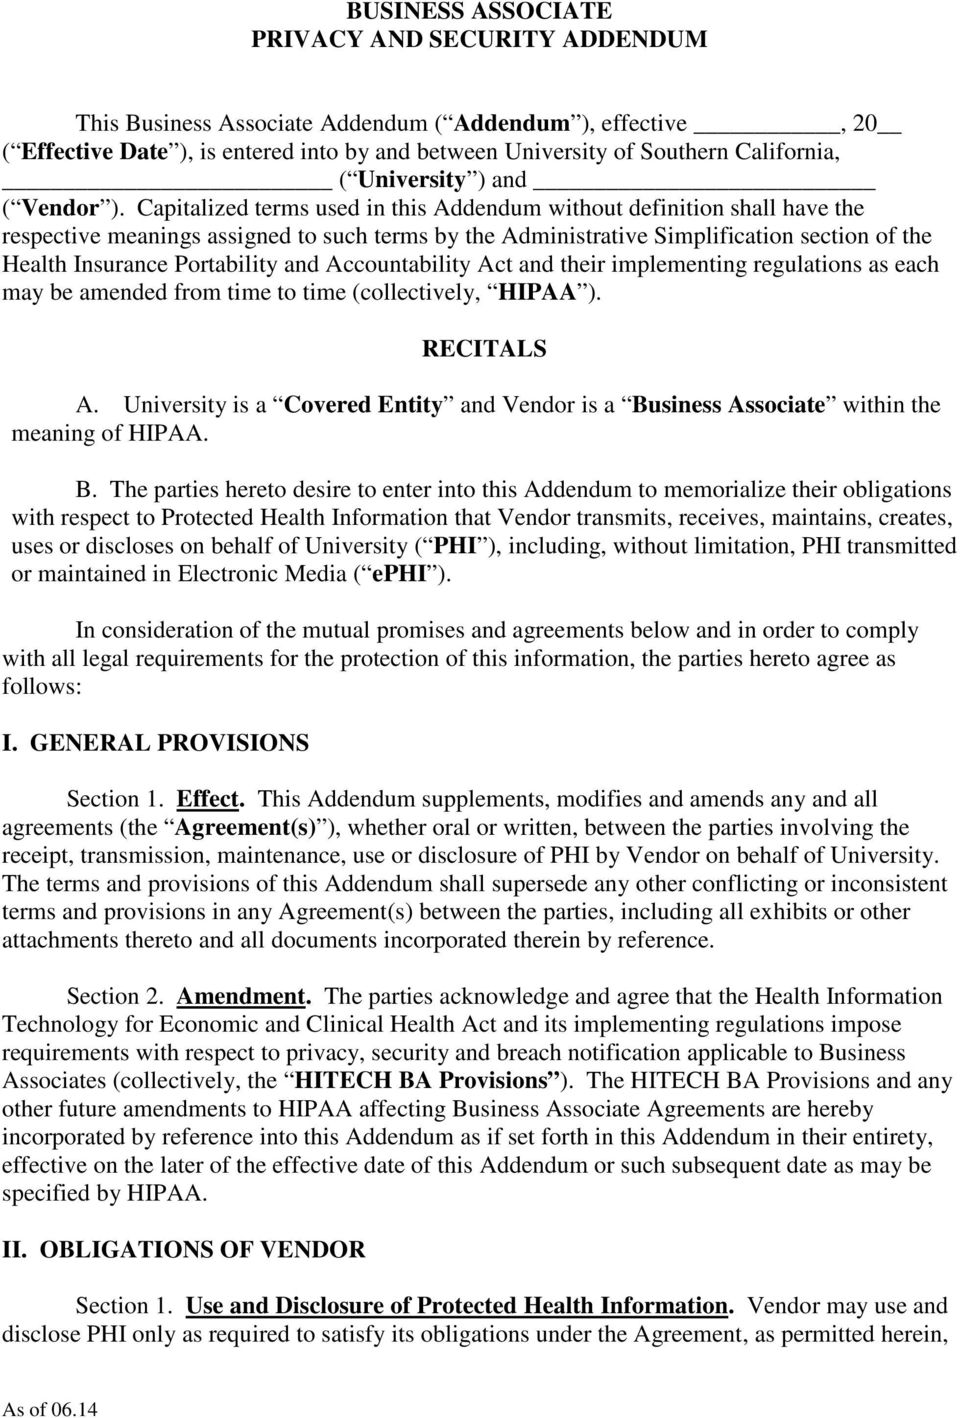 Capitalized terms used in this Addendum without definition shall have the respective meanings assigned to such terms by the Administrative Simplification section of the Health Insurance Portability